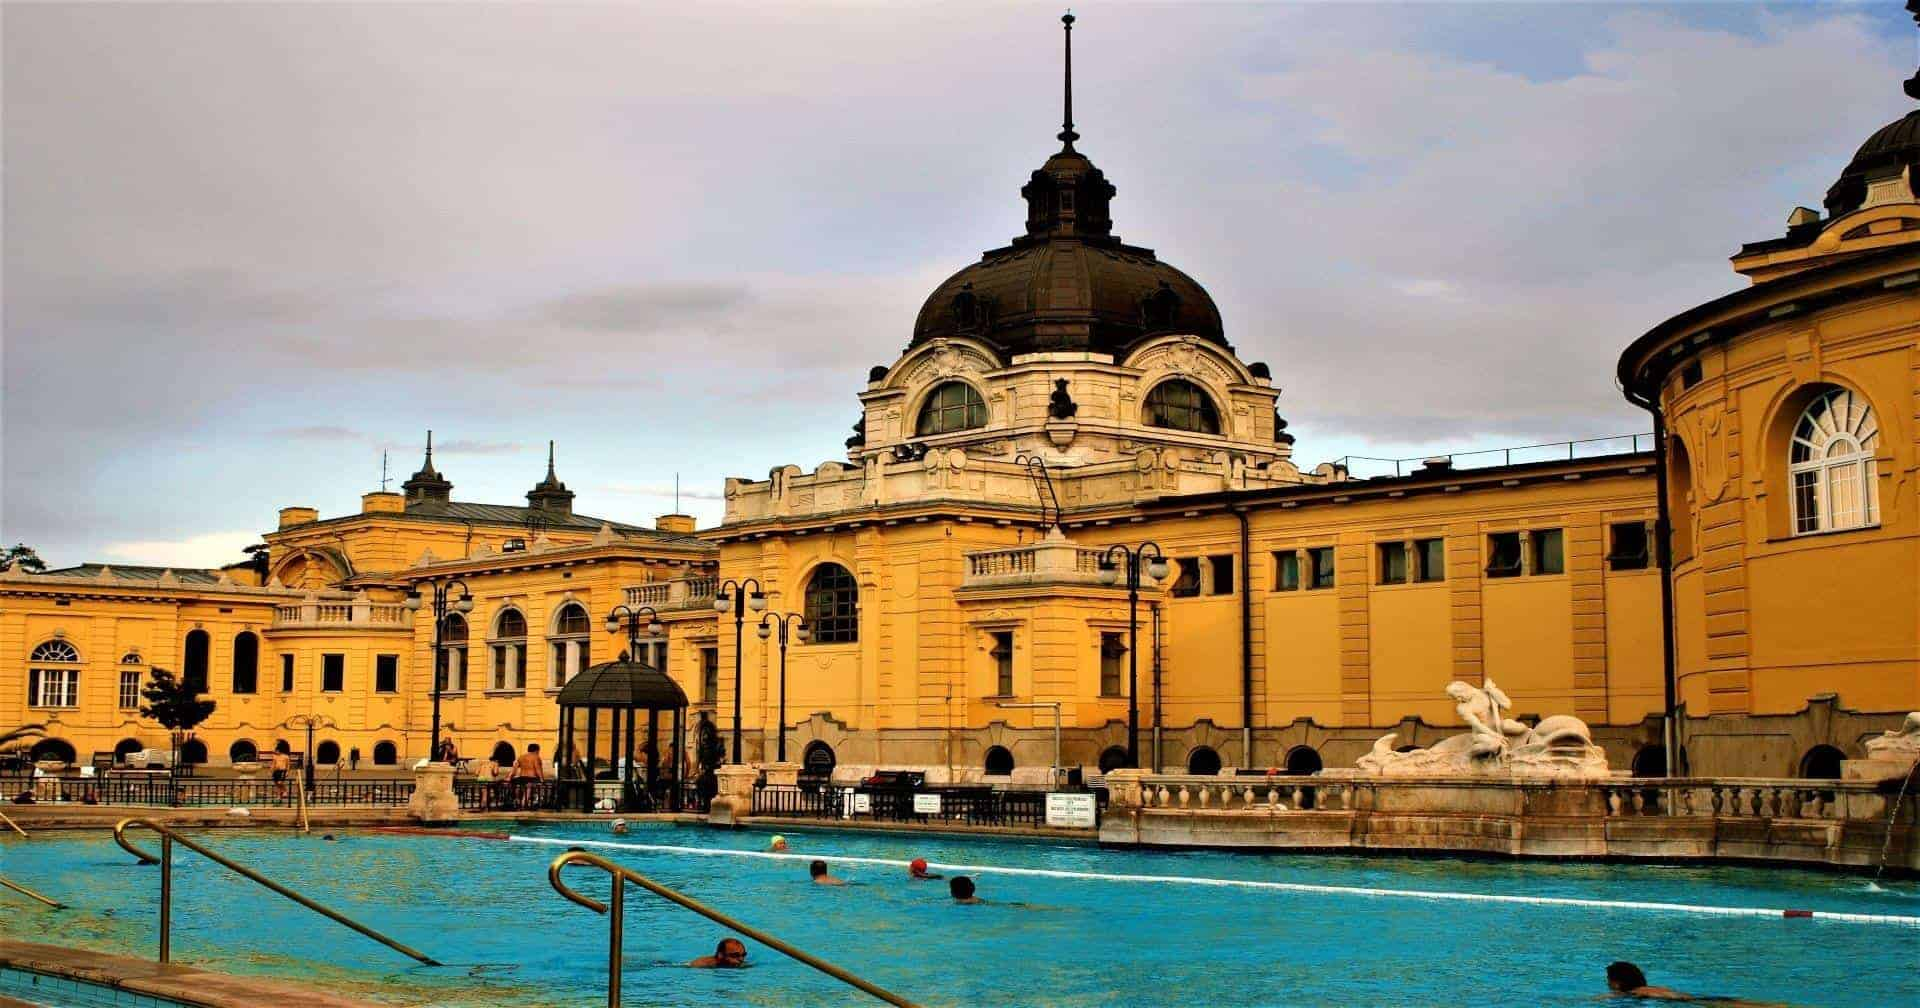 The Ultimate Guide to Budapest Thermal Baths